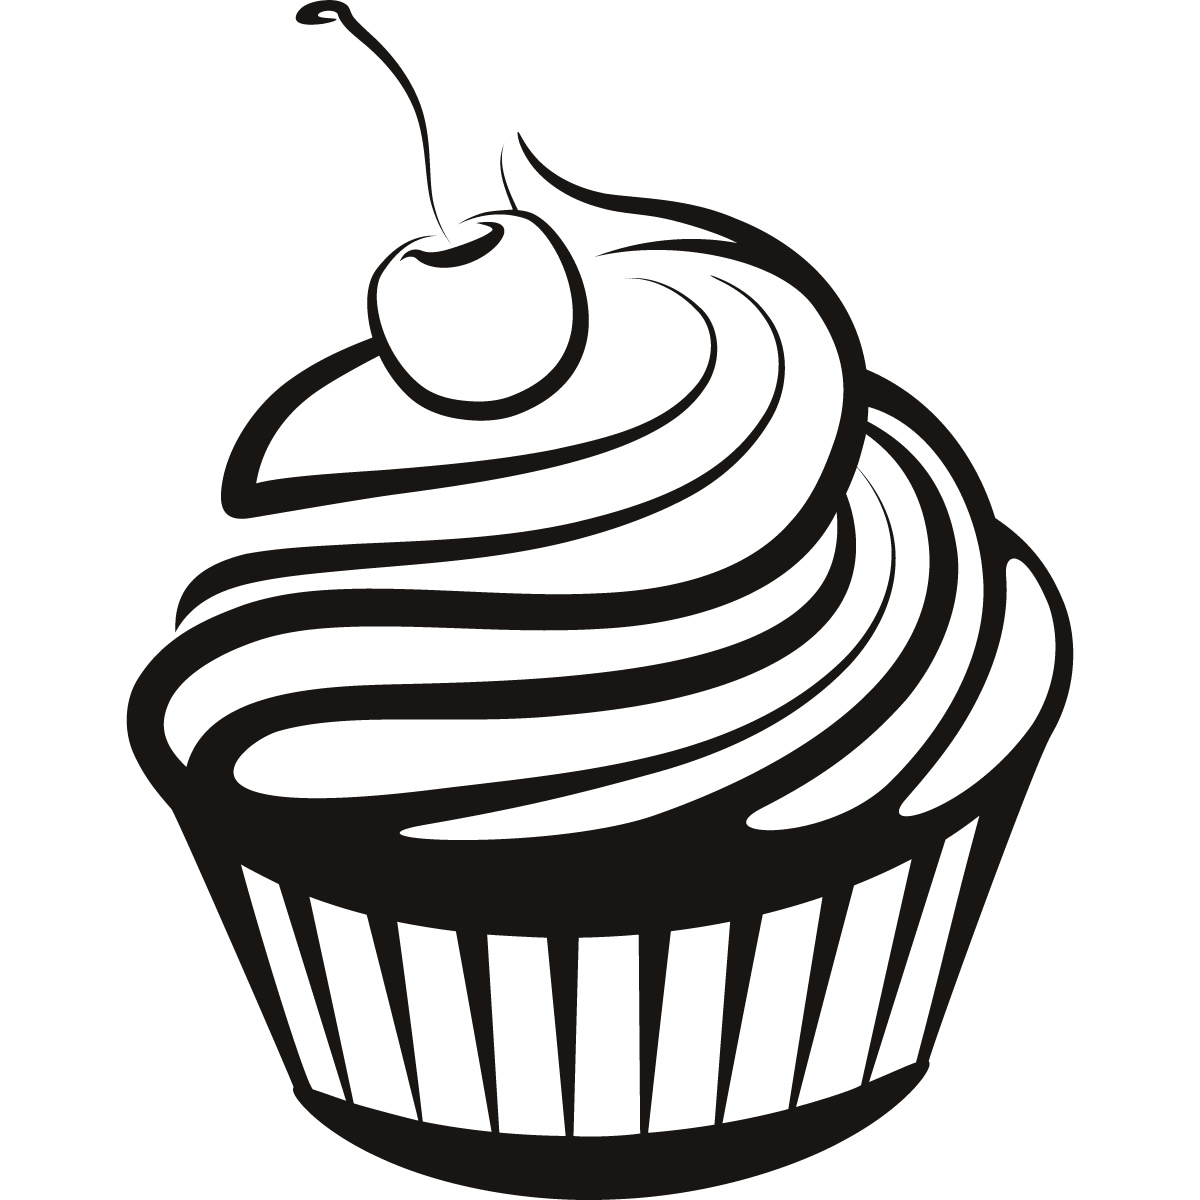 Black And White Cupcake Drawi - Cupcake Clipart Black And White